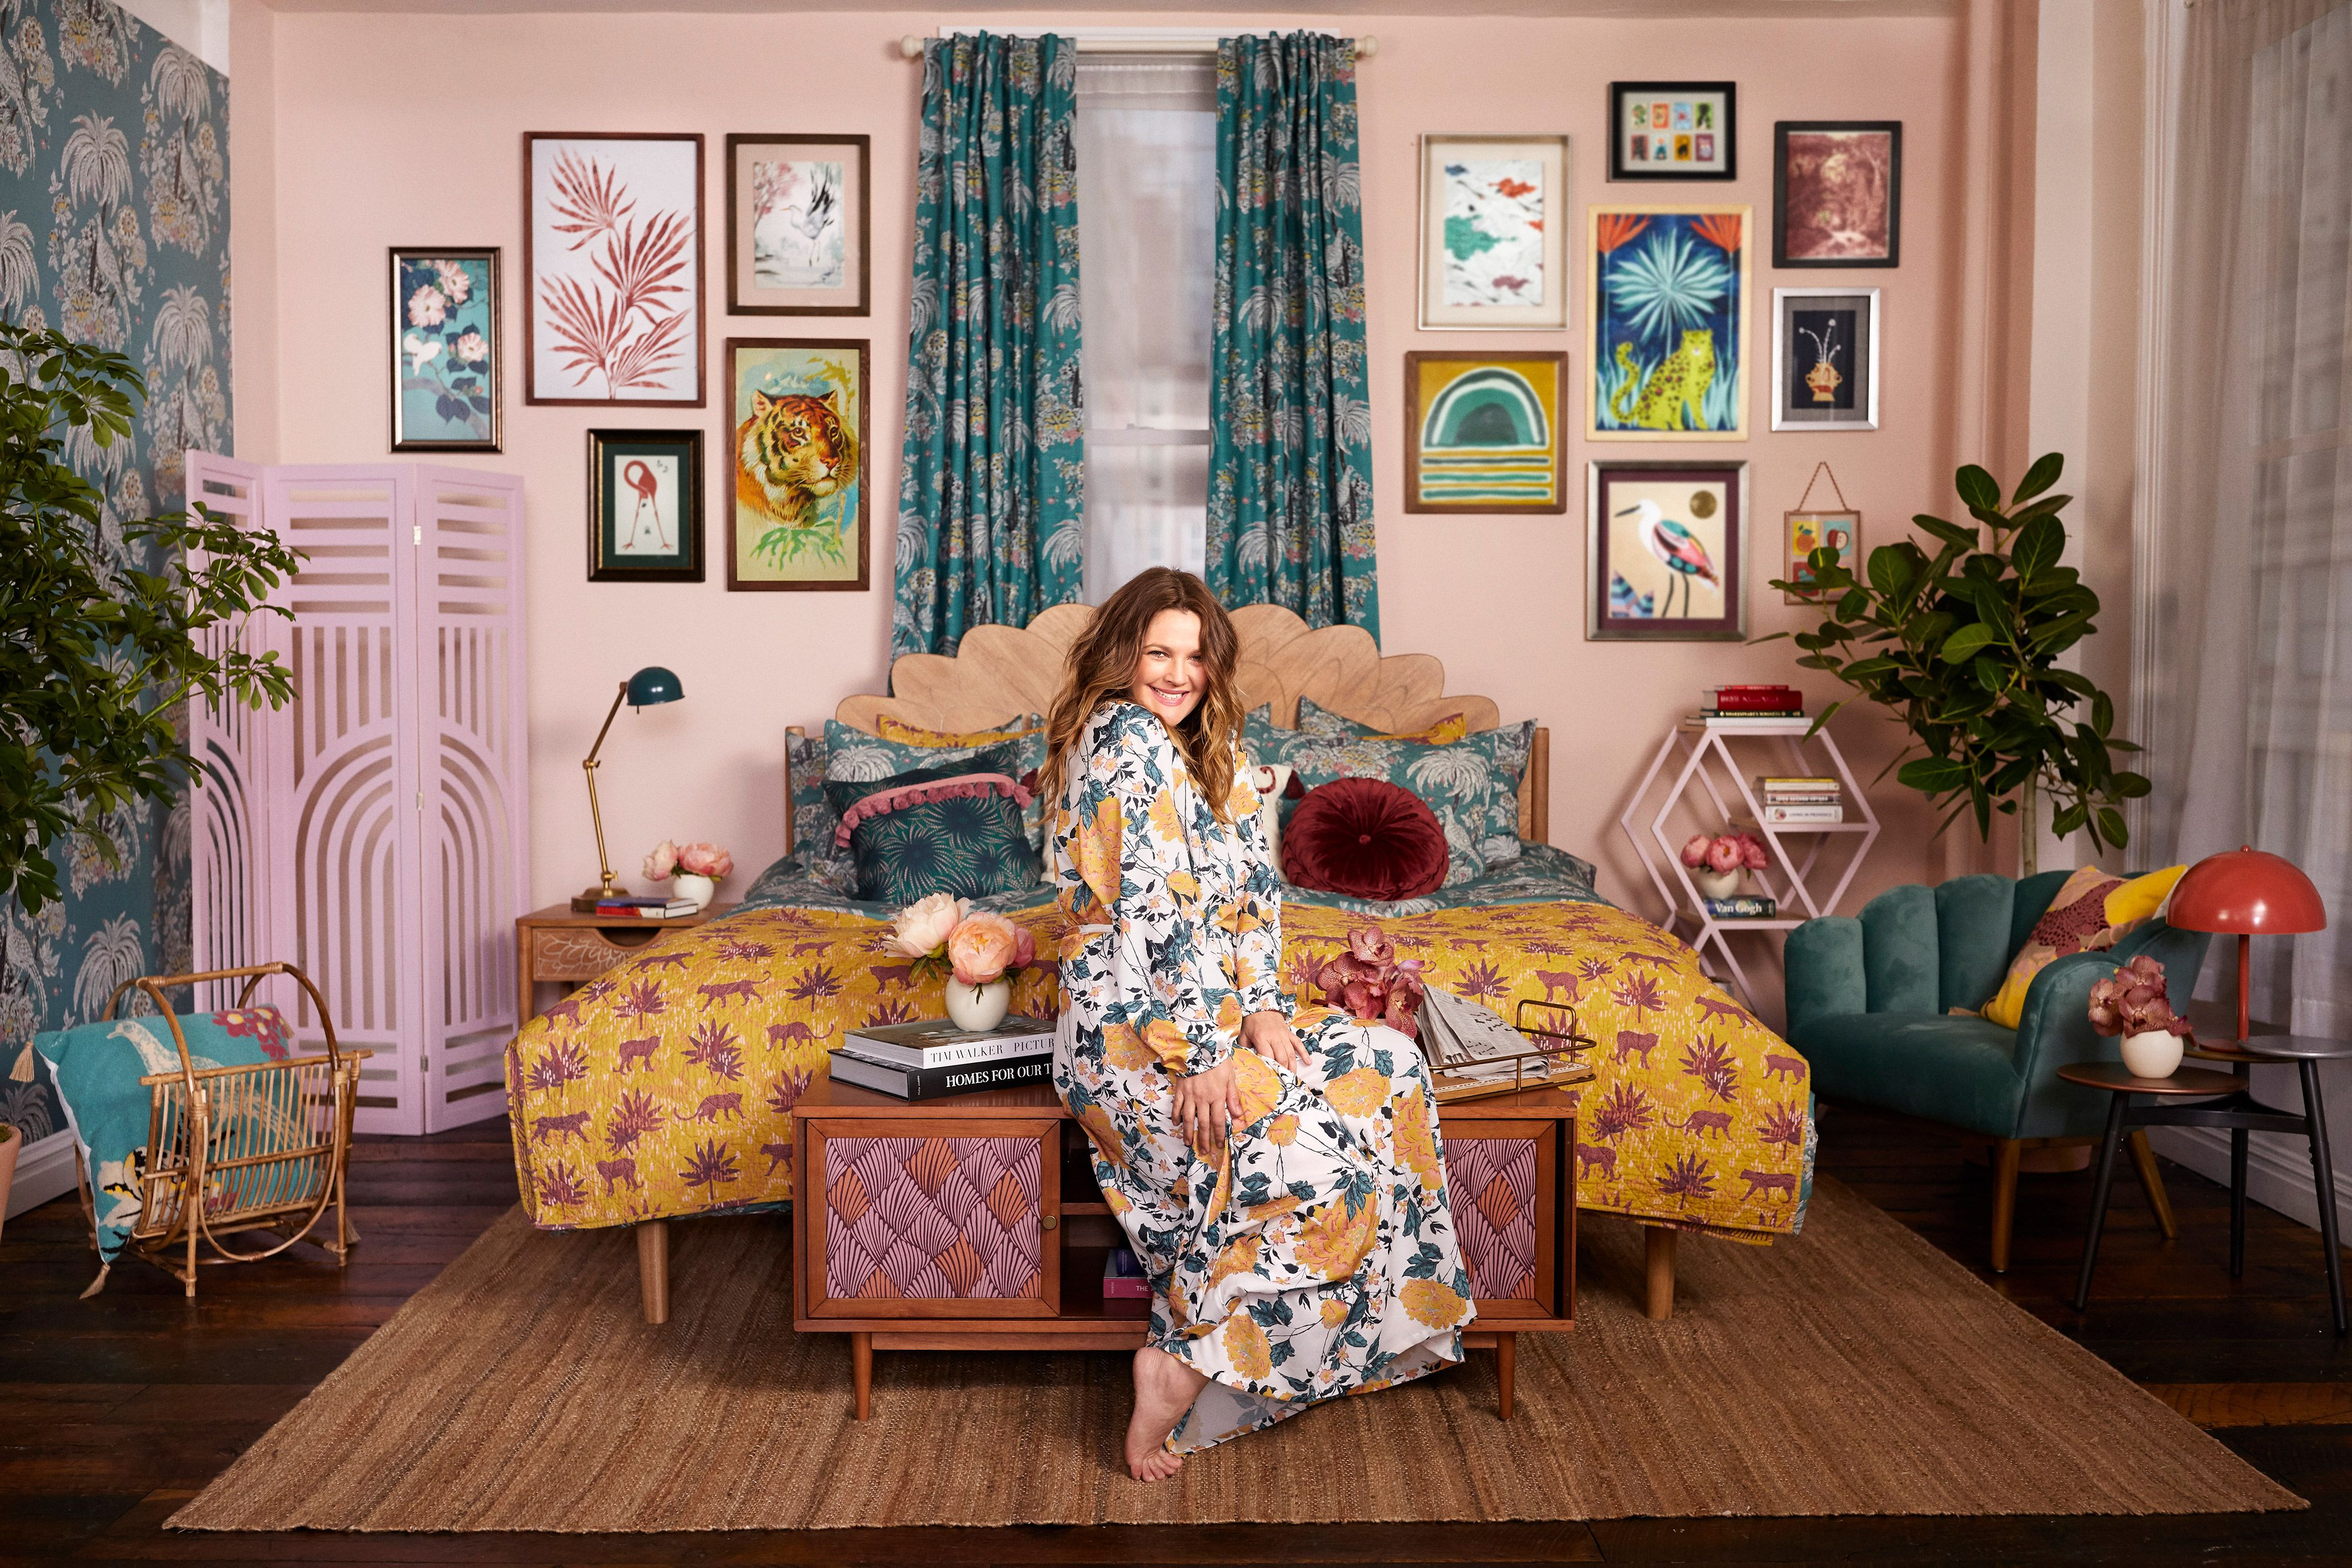 Drew Barrymore's Flower Home Collection Is on Sale Right Now